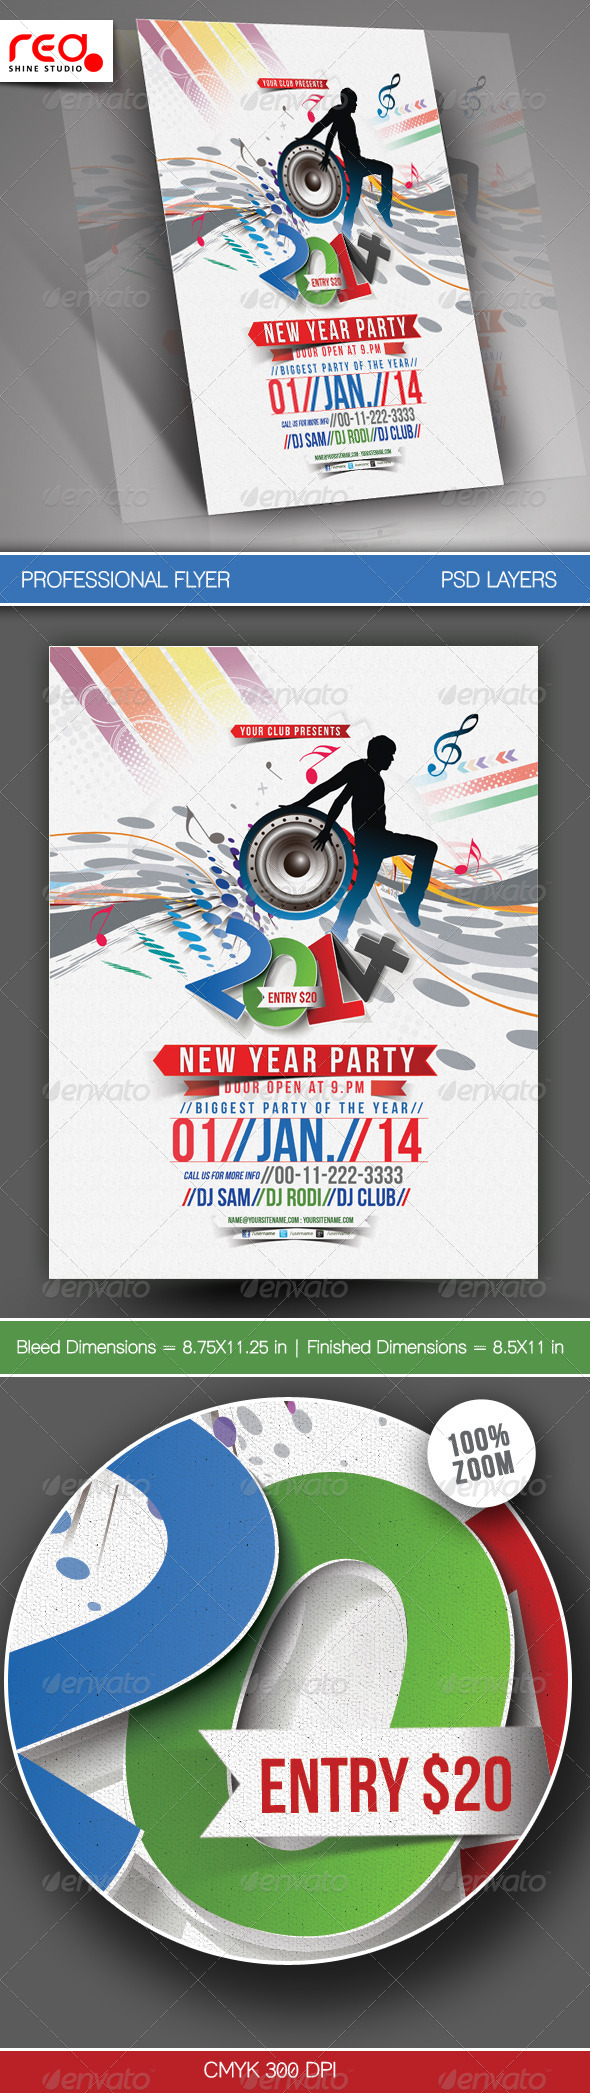 GraphicRiver New Year Party Flyer & Poster Template 5999879